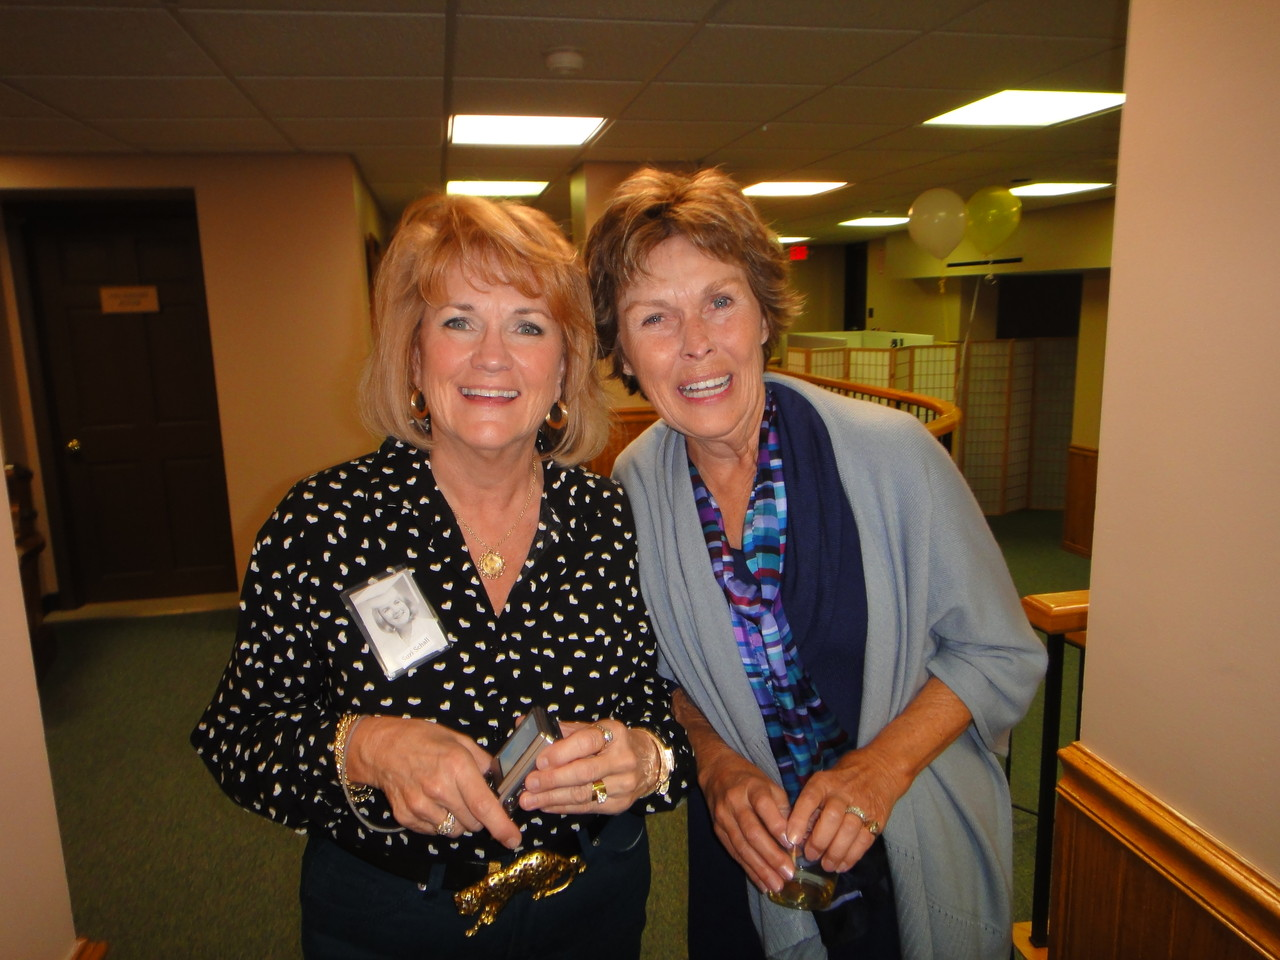 Susie Schall & Janet Hovey